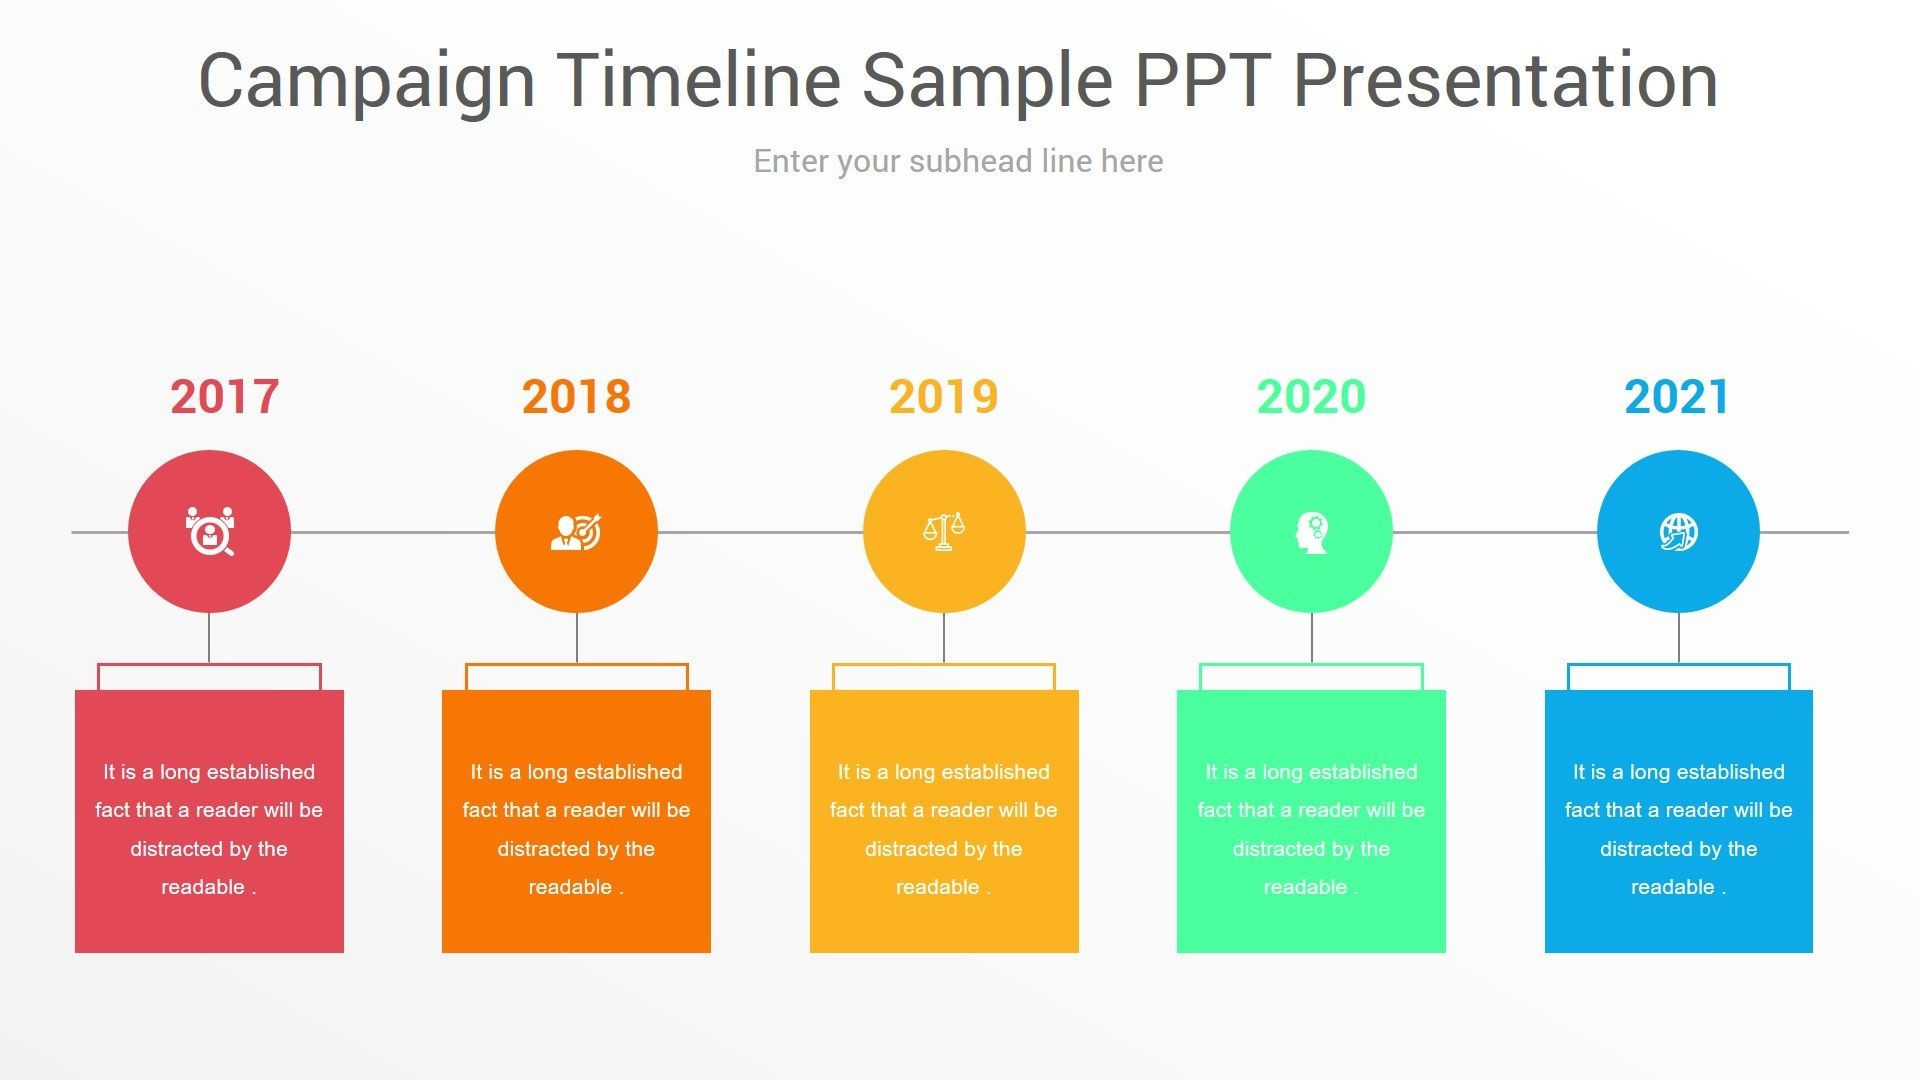 004 Imposing Timeline Sample For Ppt High Definition  Powerpoint Template 2010 Example1920